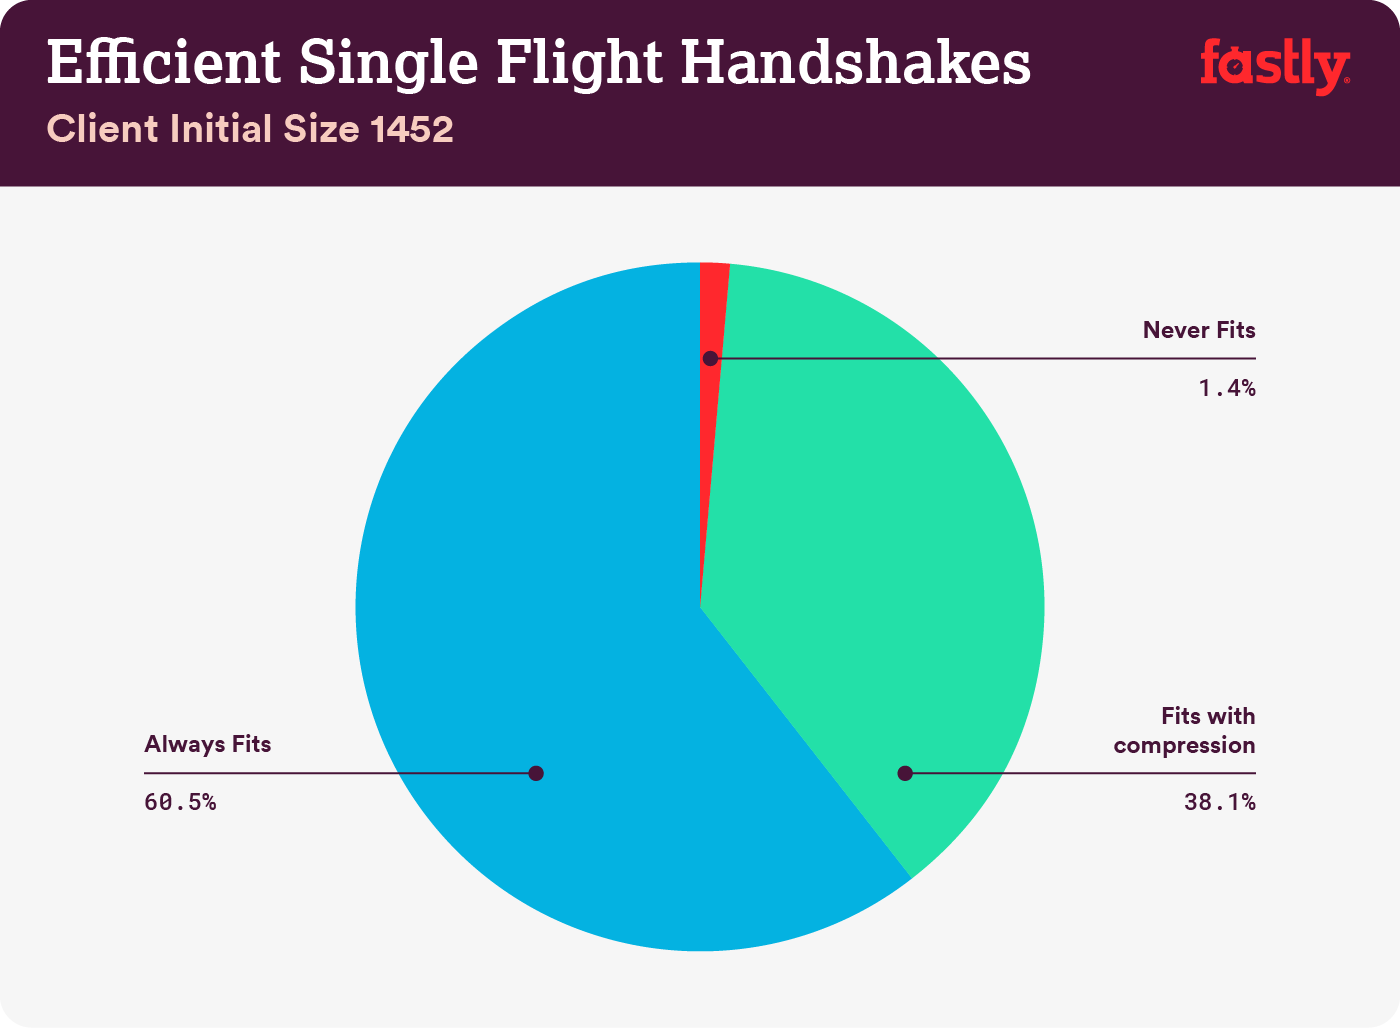 Efficient single flight handshakes 2